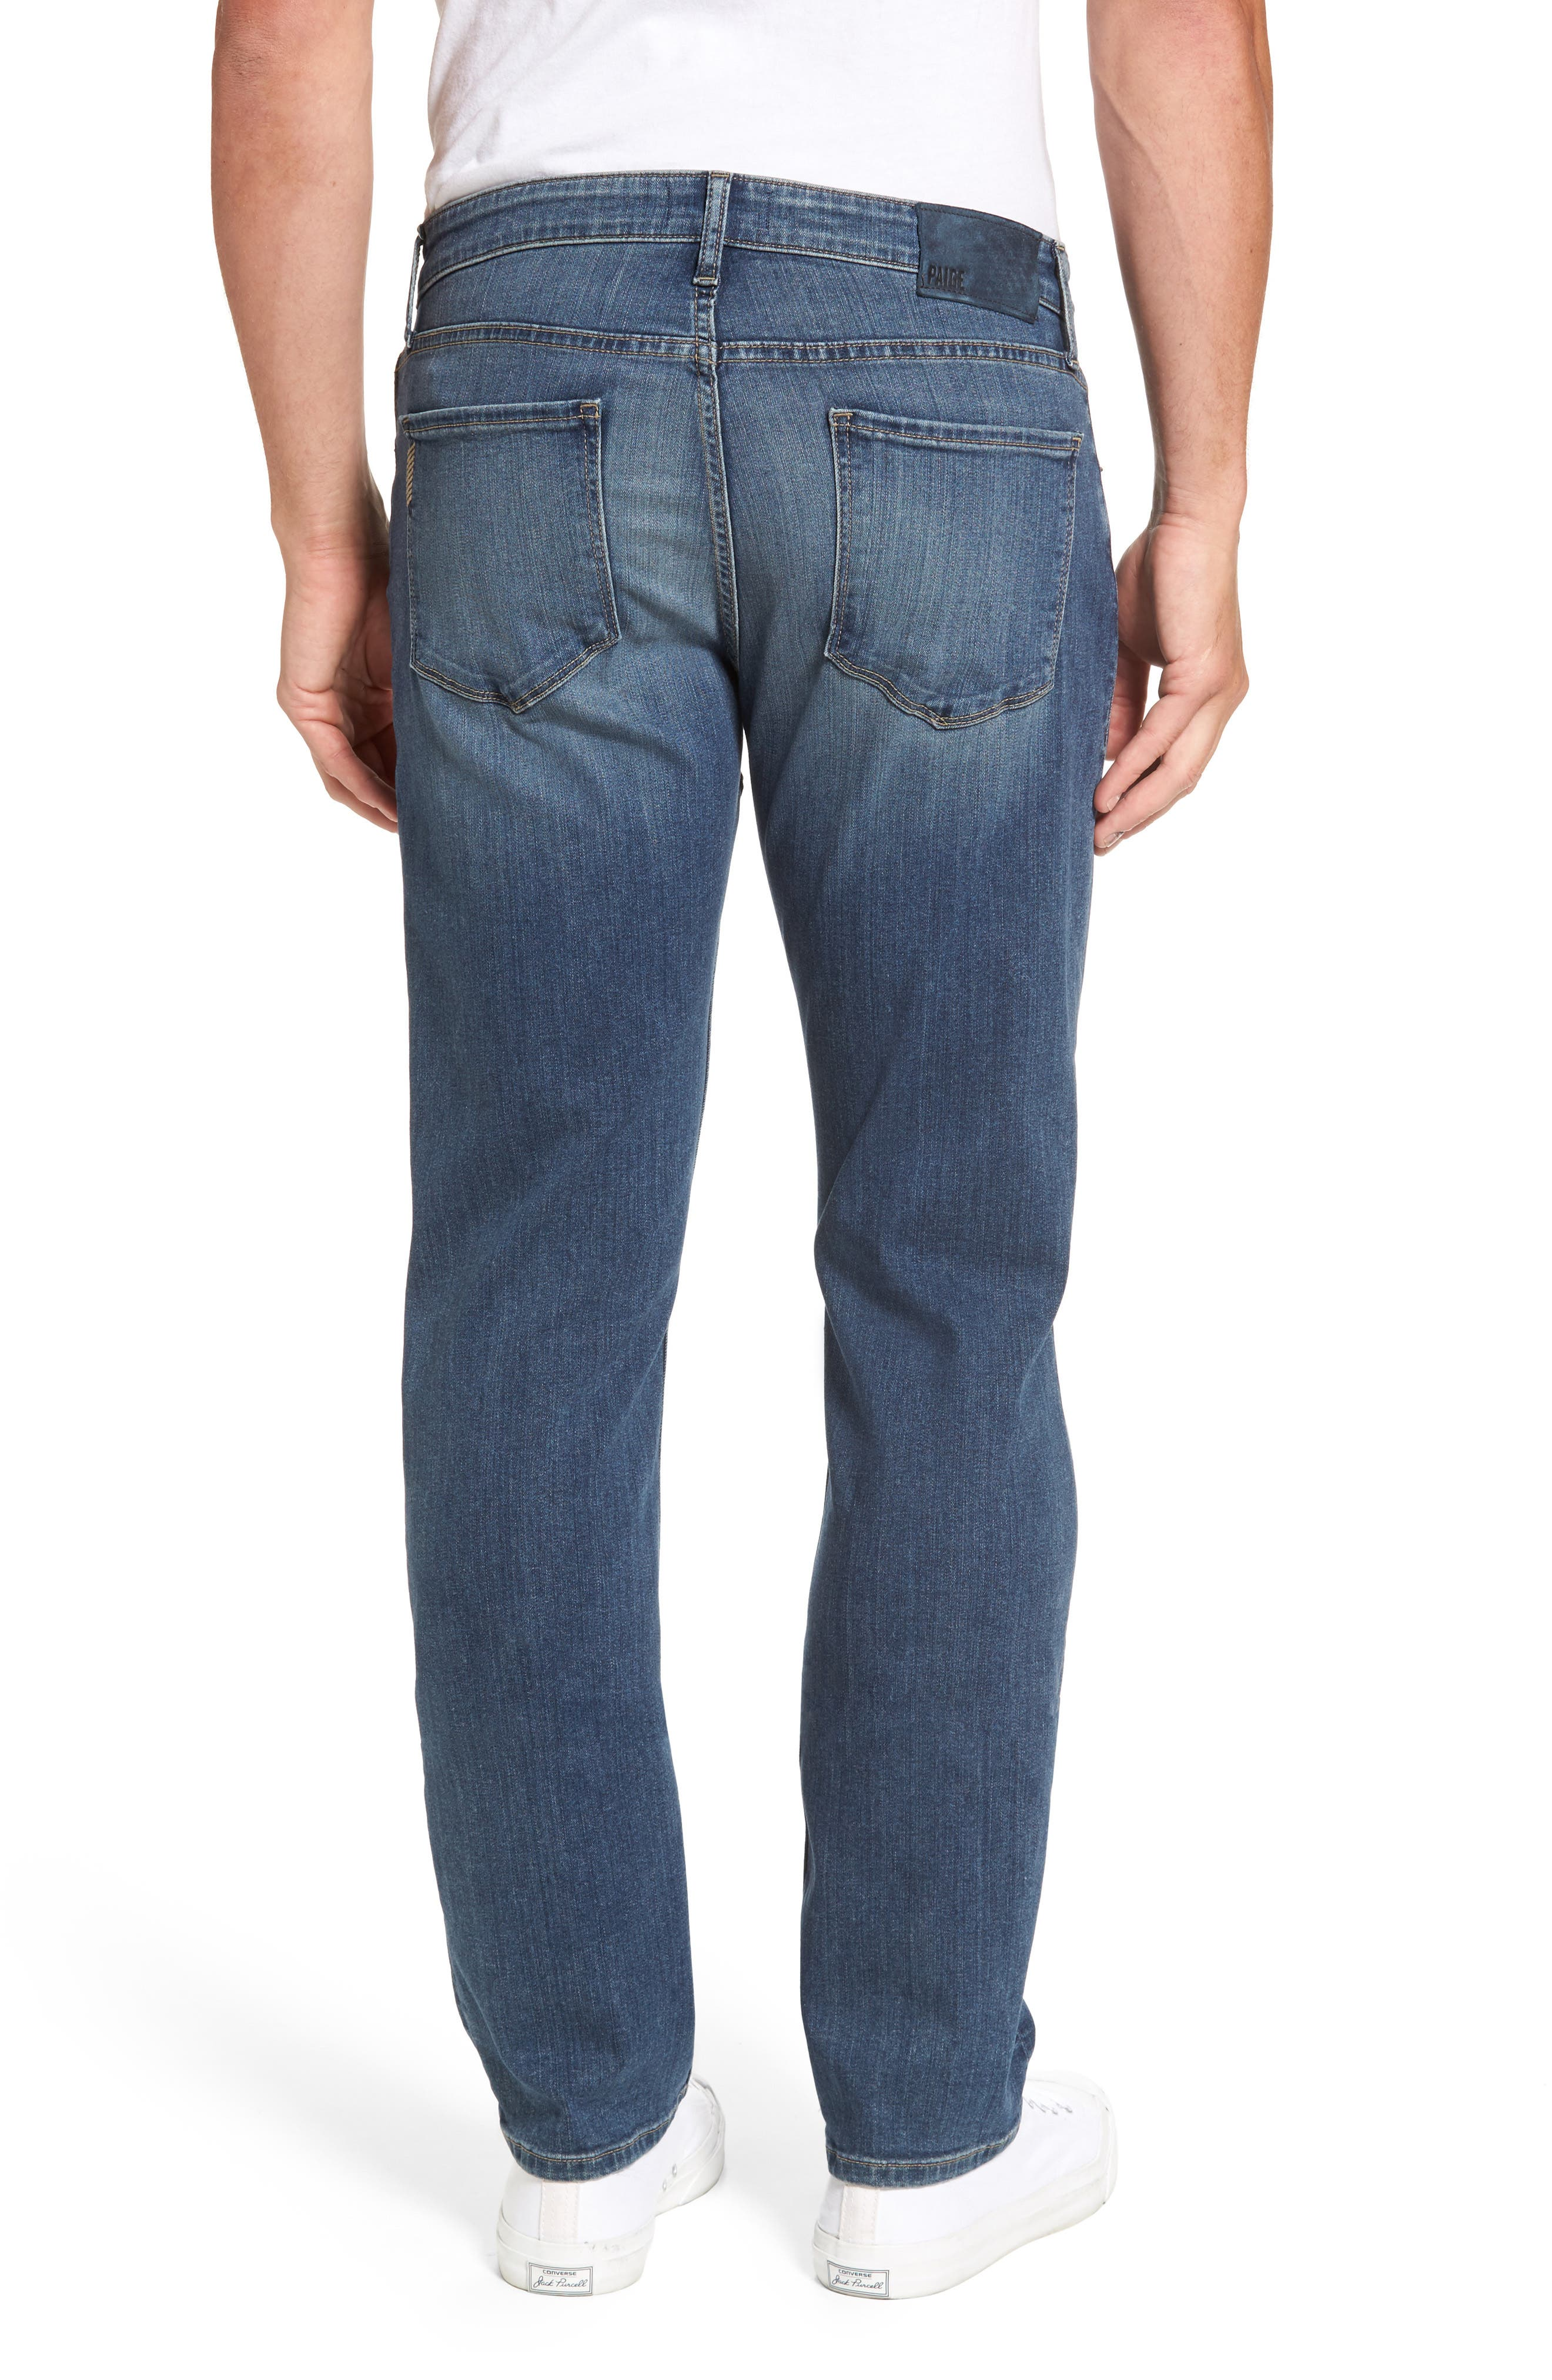 Normandie Straight Fit Jeans,                             Alternate thumbnail 2, color,                             ALMONT